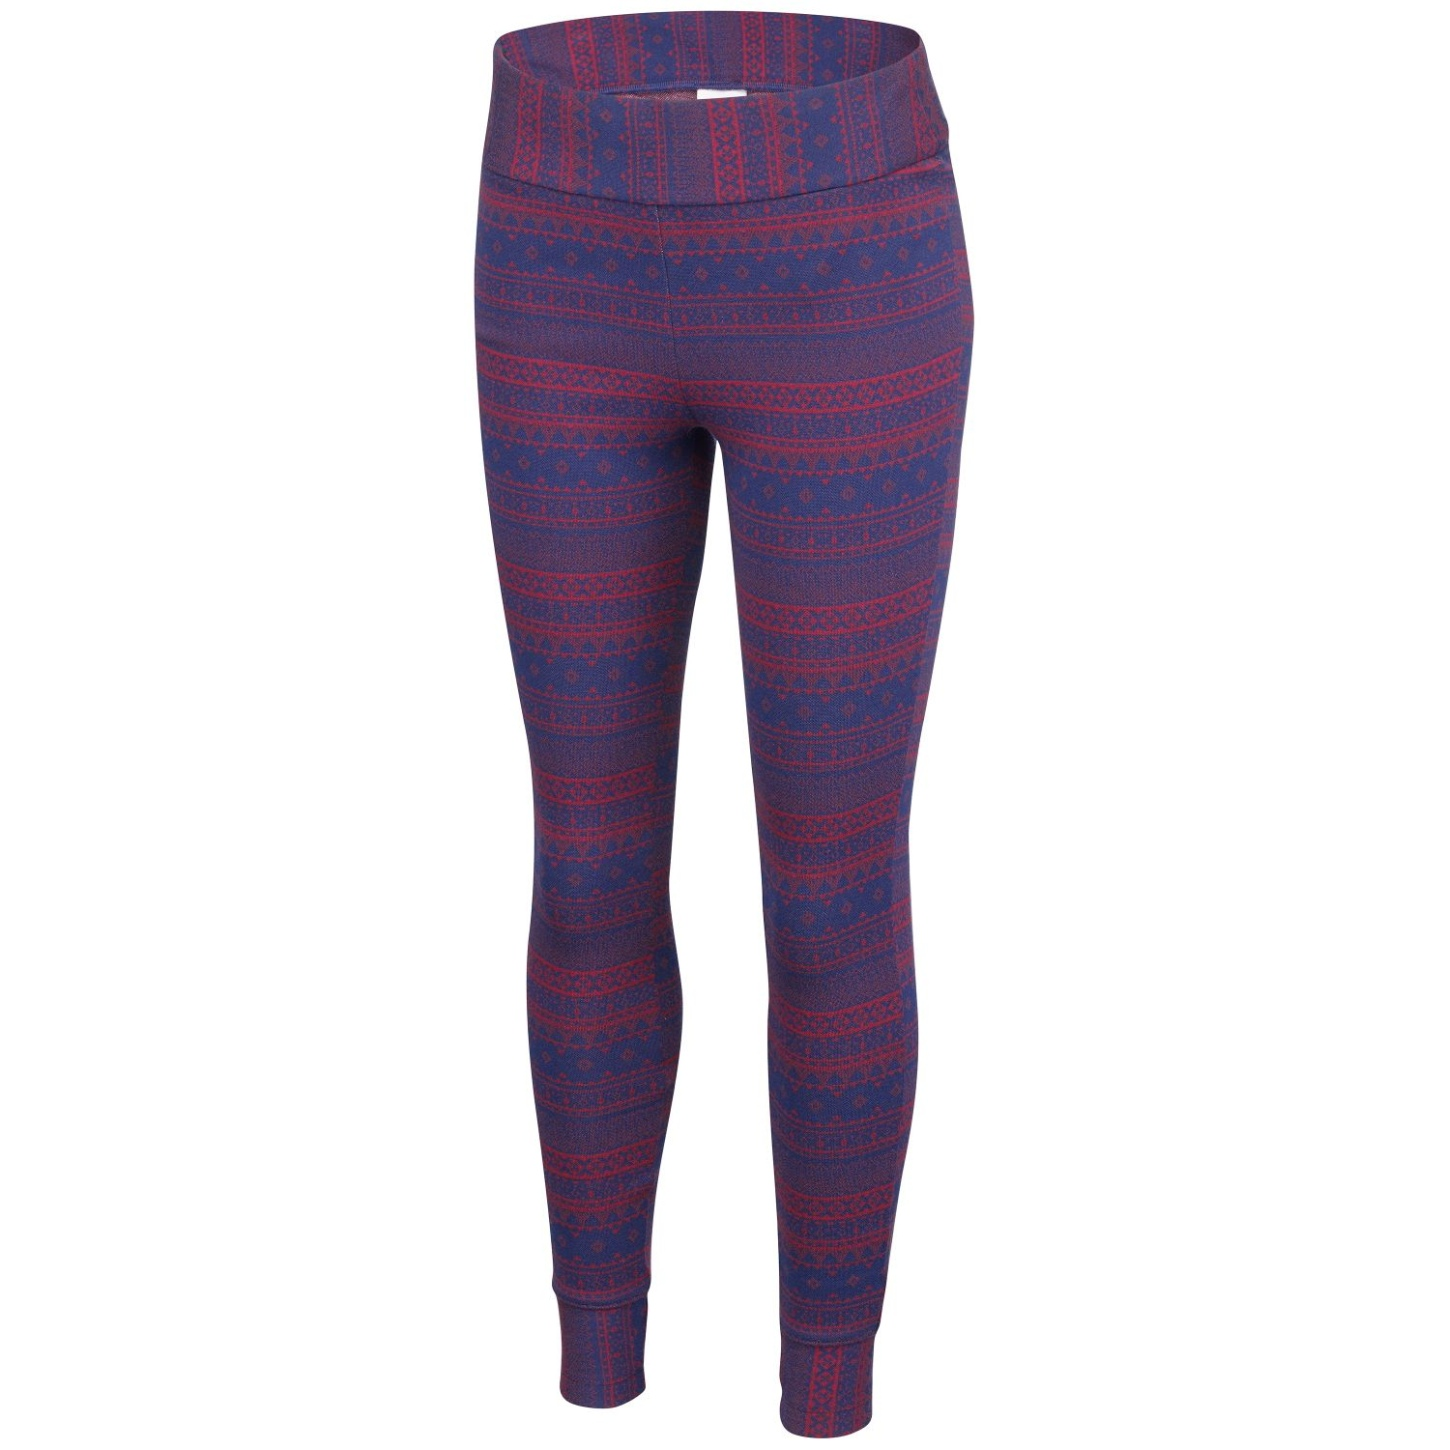 Columbia Jacquard-Leggings Aspen Lodge für Damen Marsala Red Jacquard-30